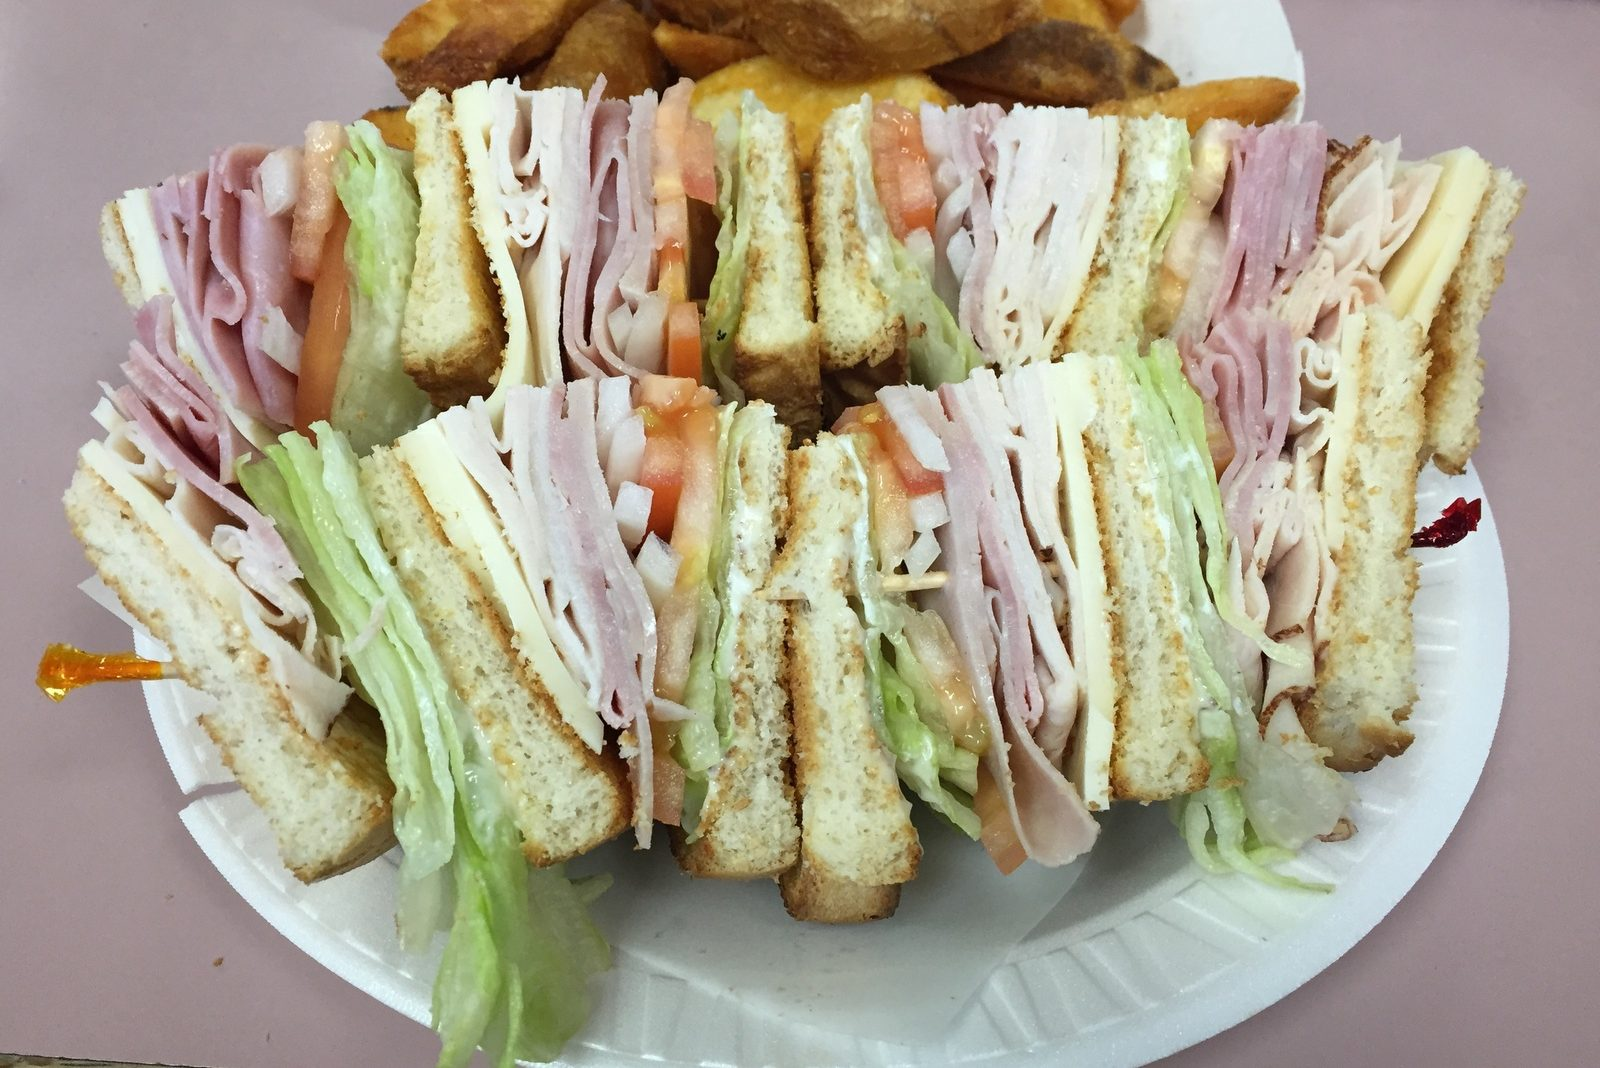 Club sandwich and potato wedges at Mayback's Deli. (Caitlin Hartney/Special to The News)